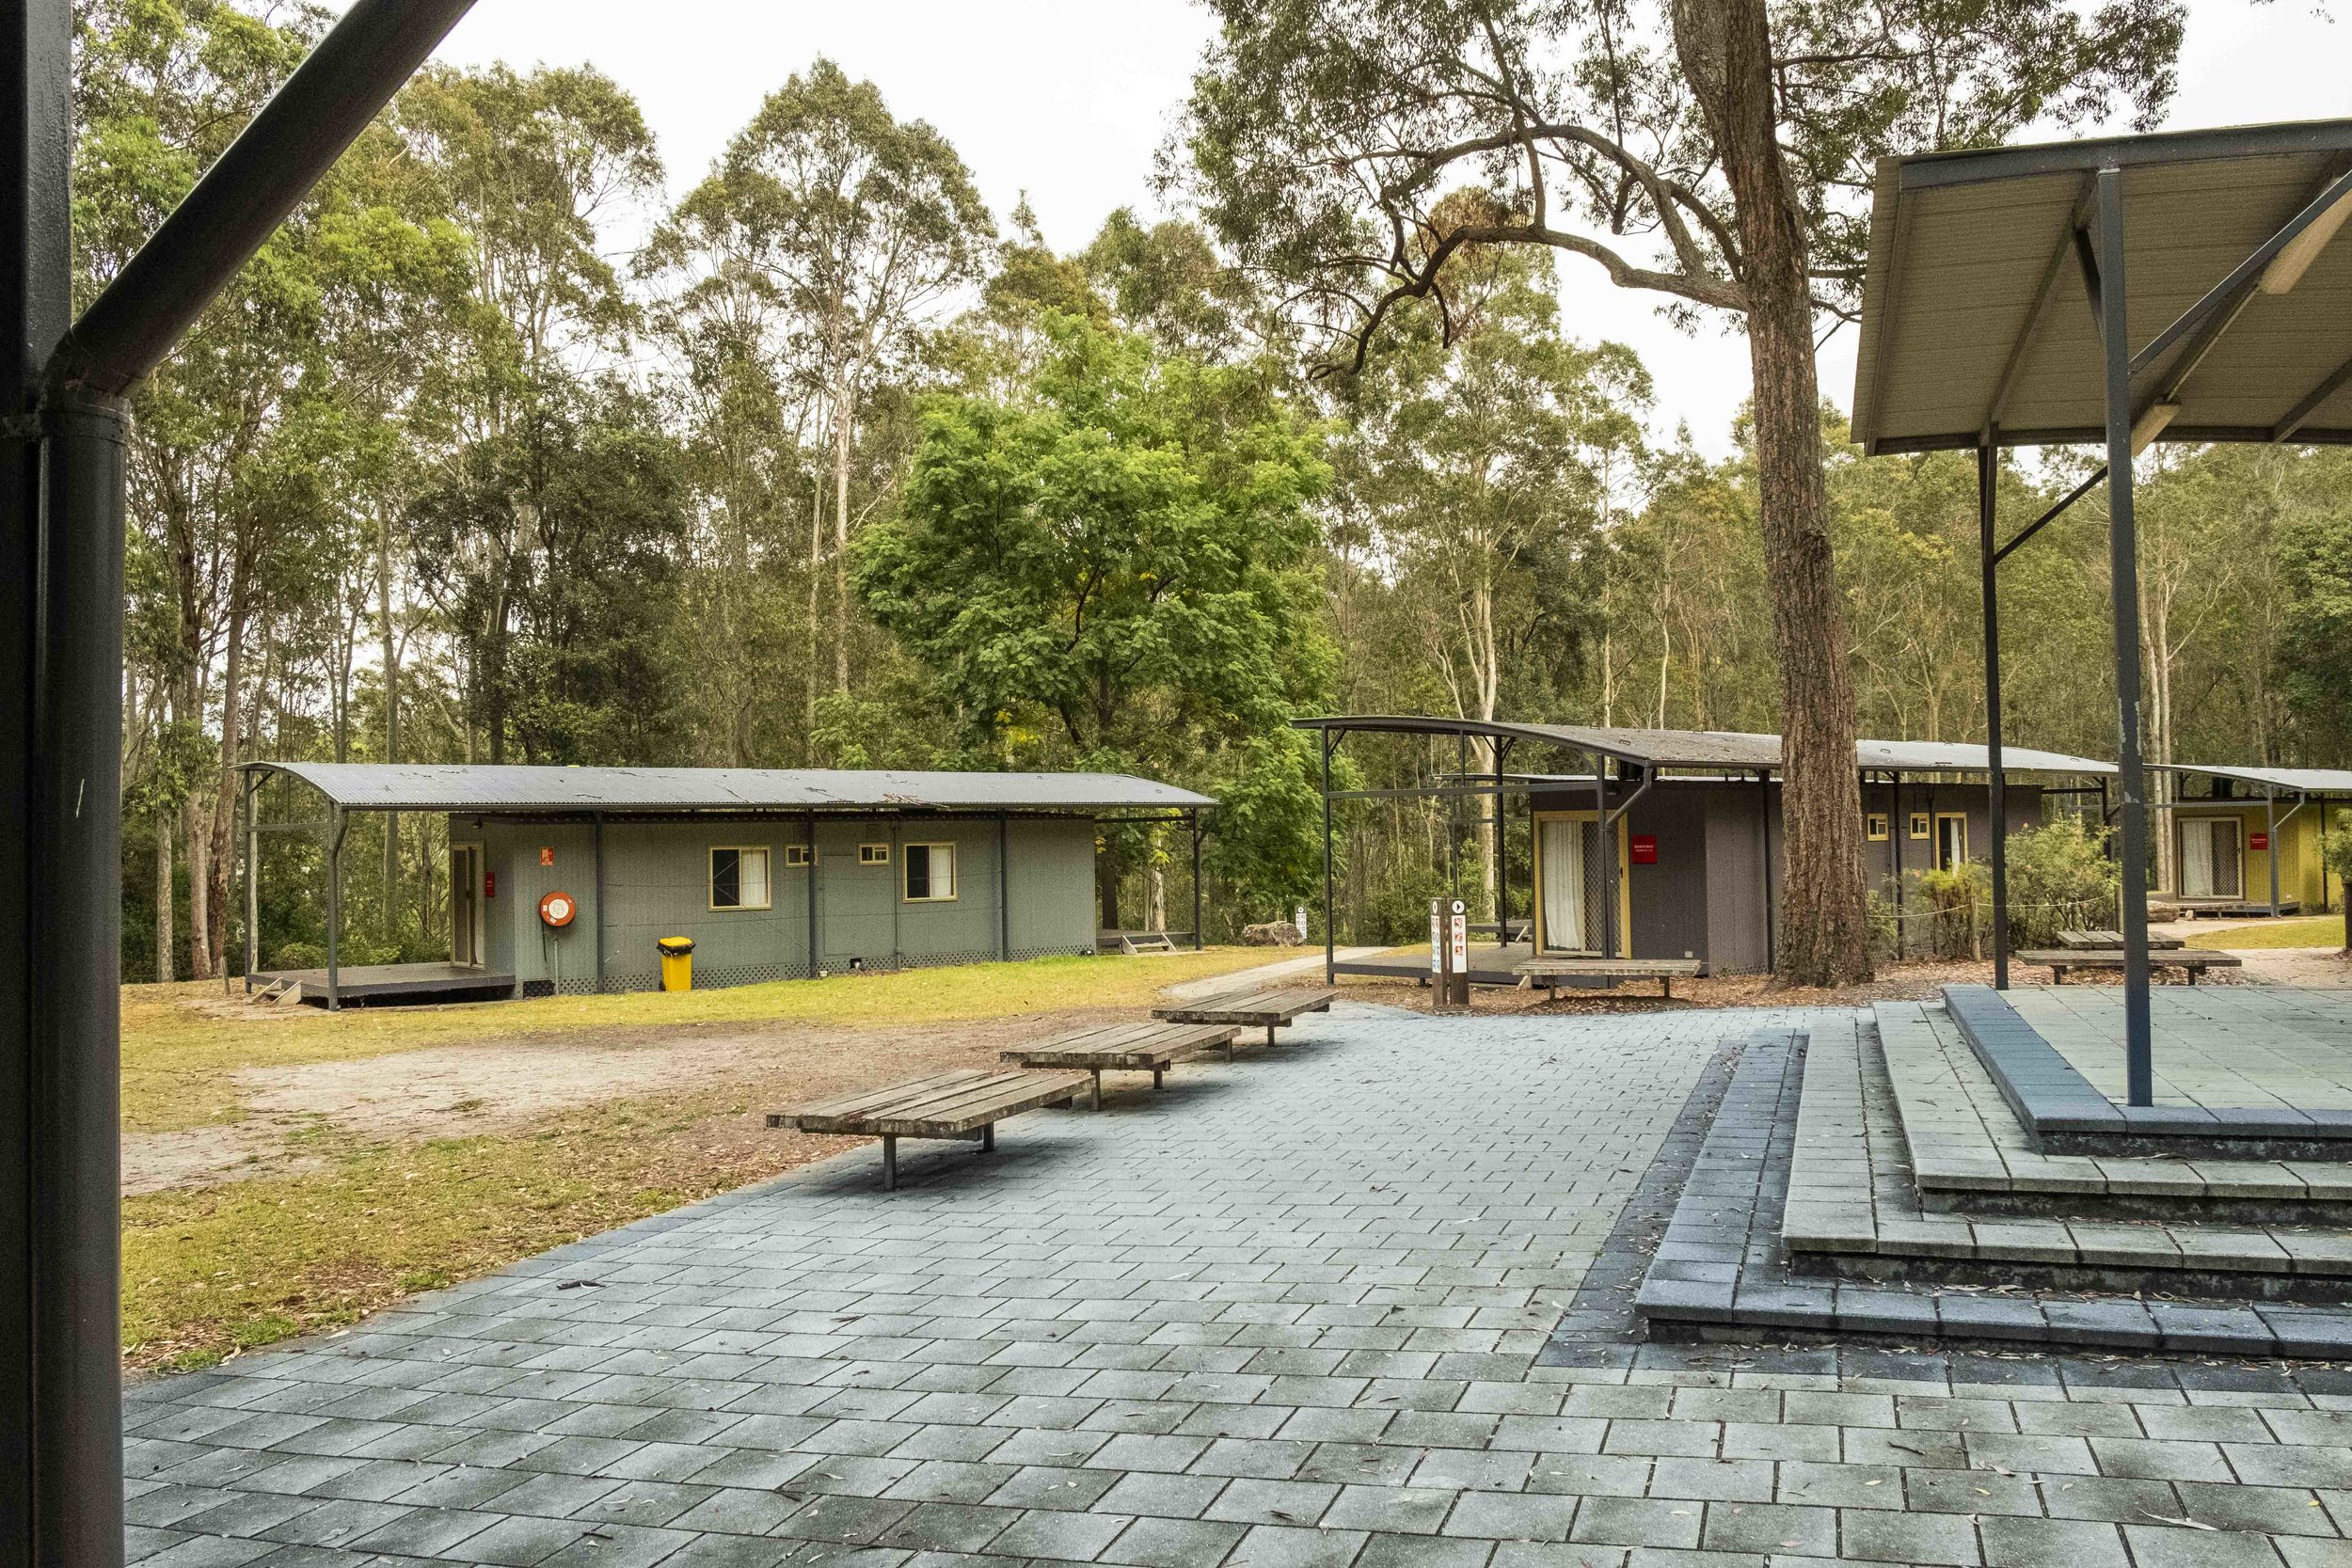 Koloona - If your group is looking for great value and community atmosphere in a secluded setting, Koloona will offer you just that, surrounded by towering gum trees.